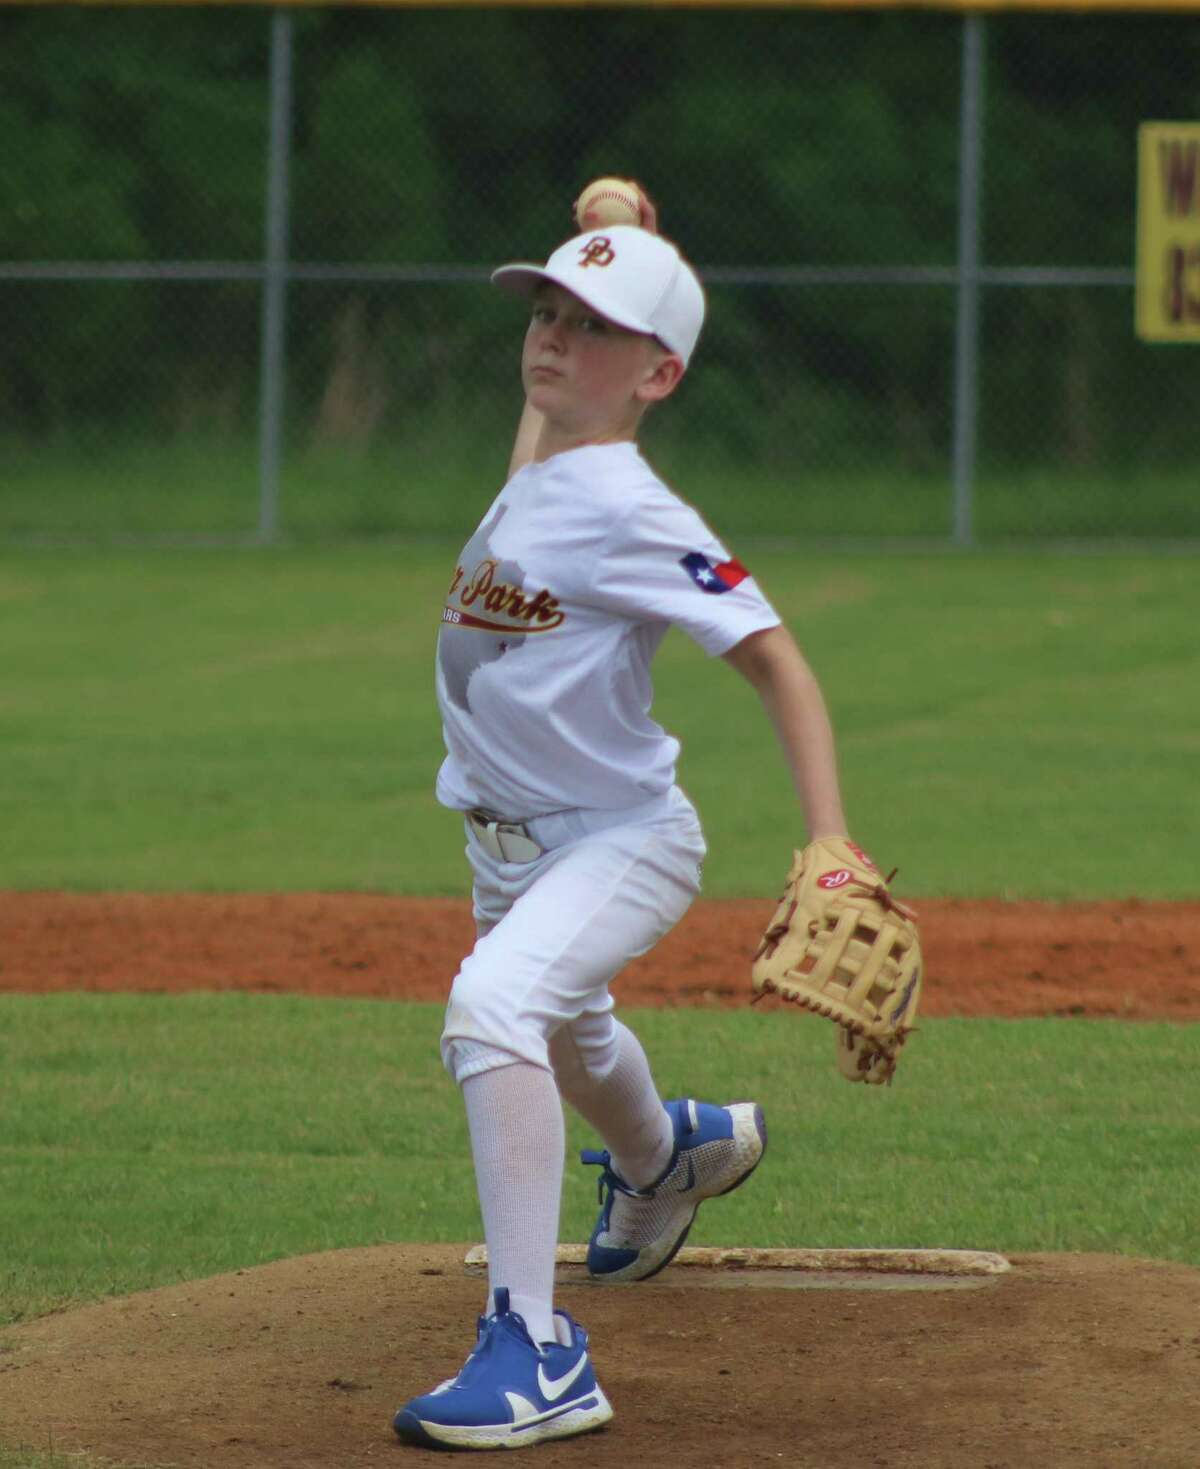 Deer Park's Brayden Keller, en route to nailing down the team's second South Zone victory Wednesday, was effective in both games on the hill.